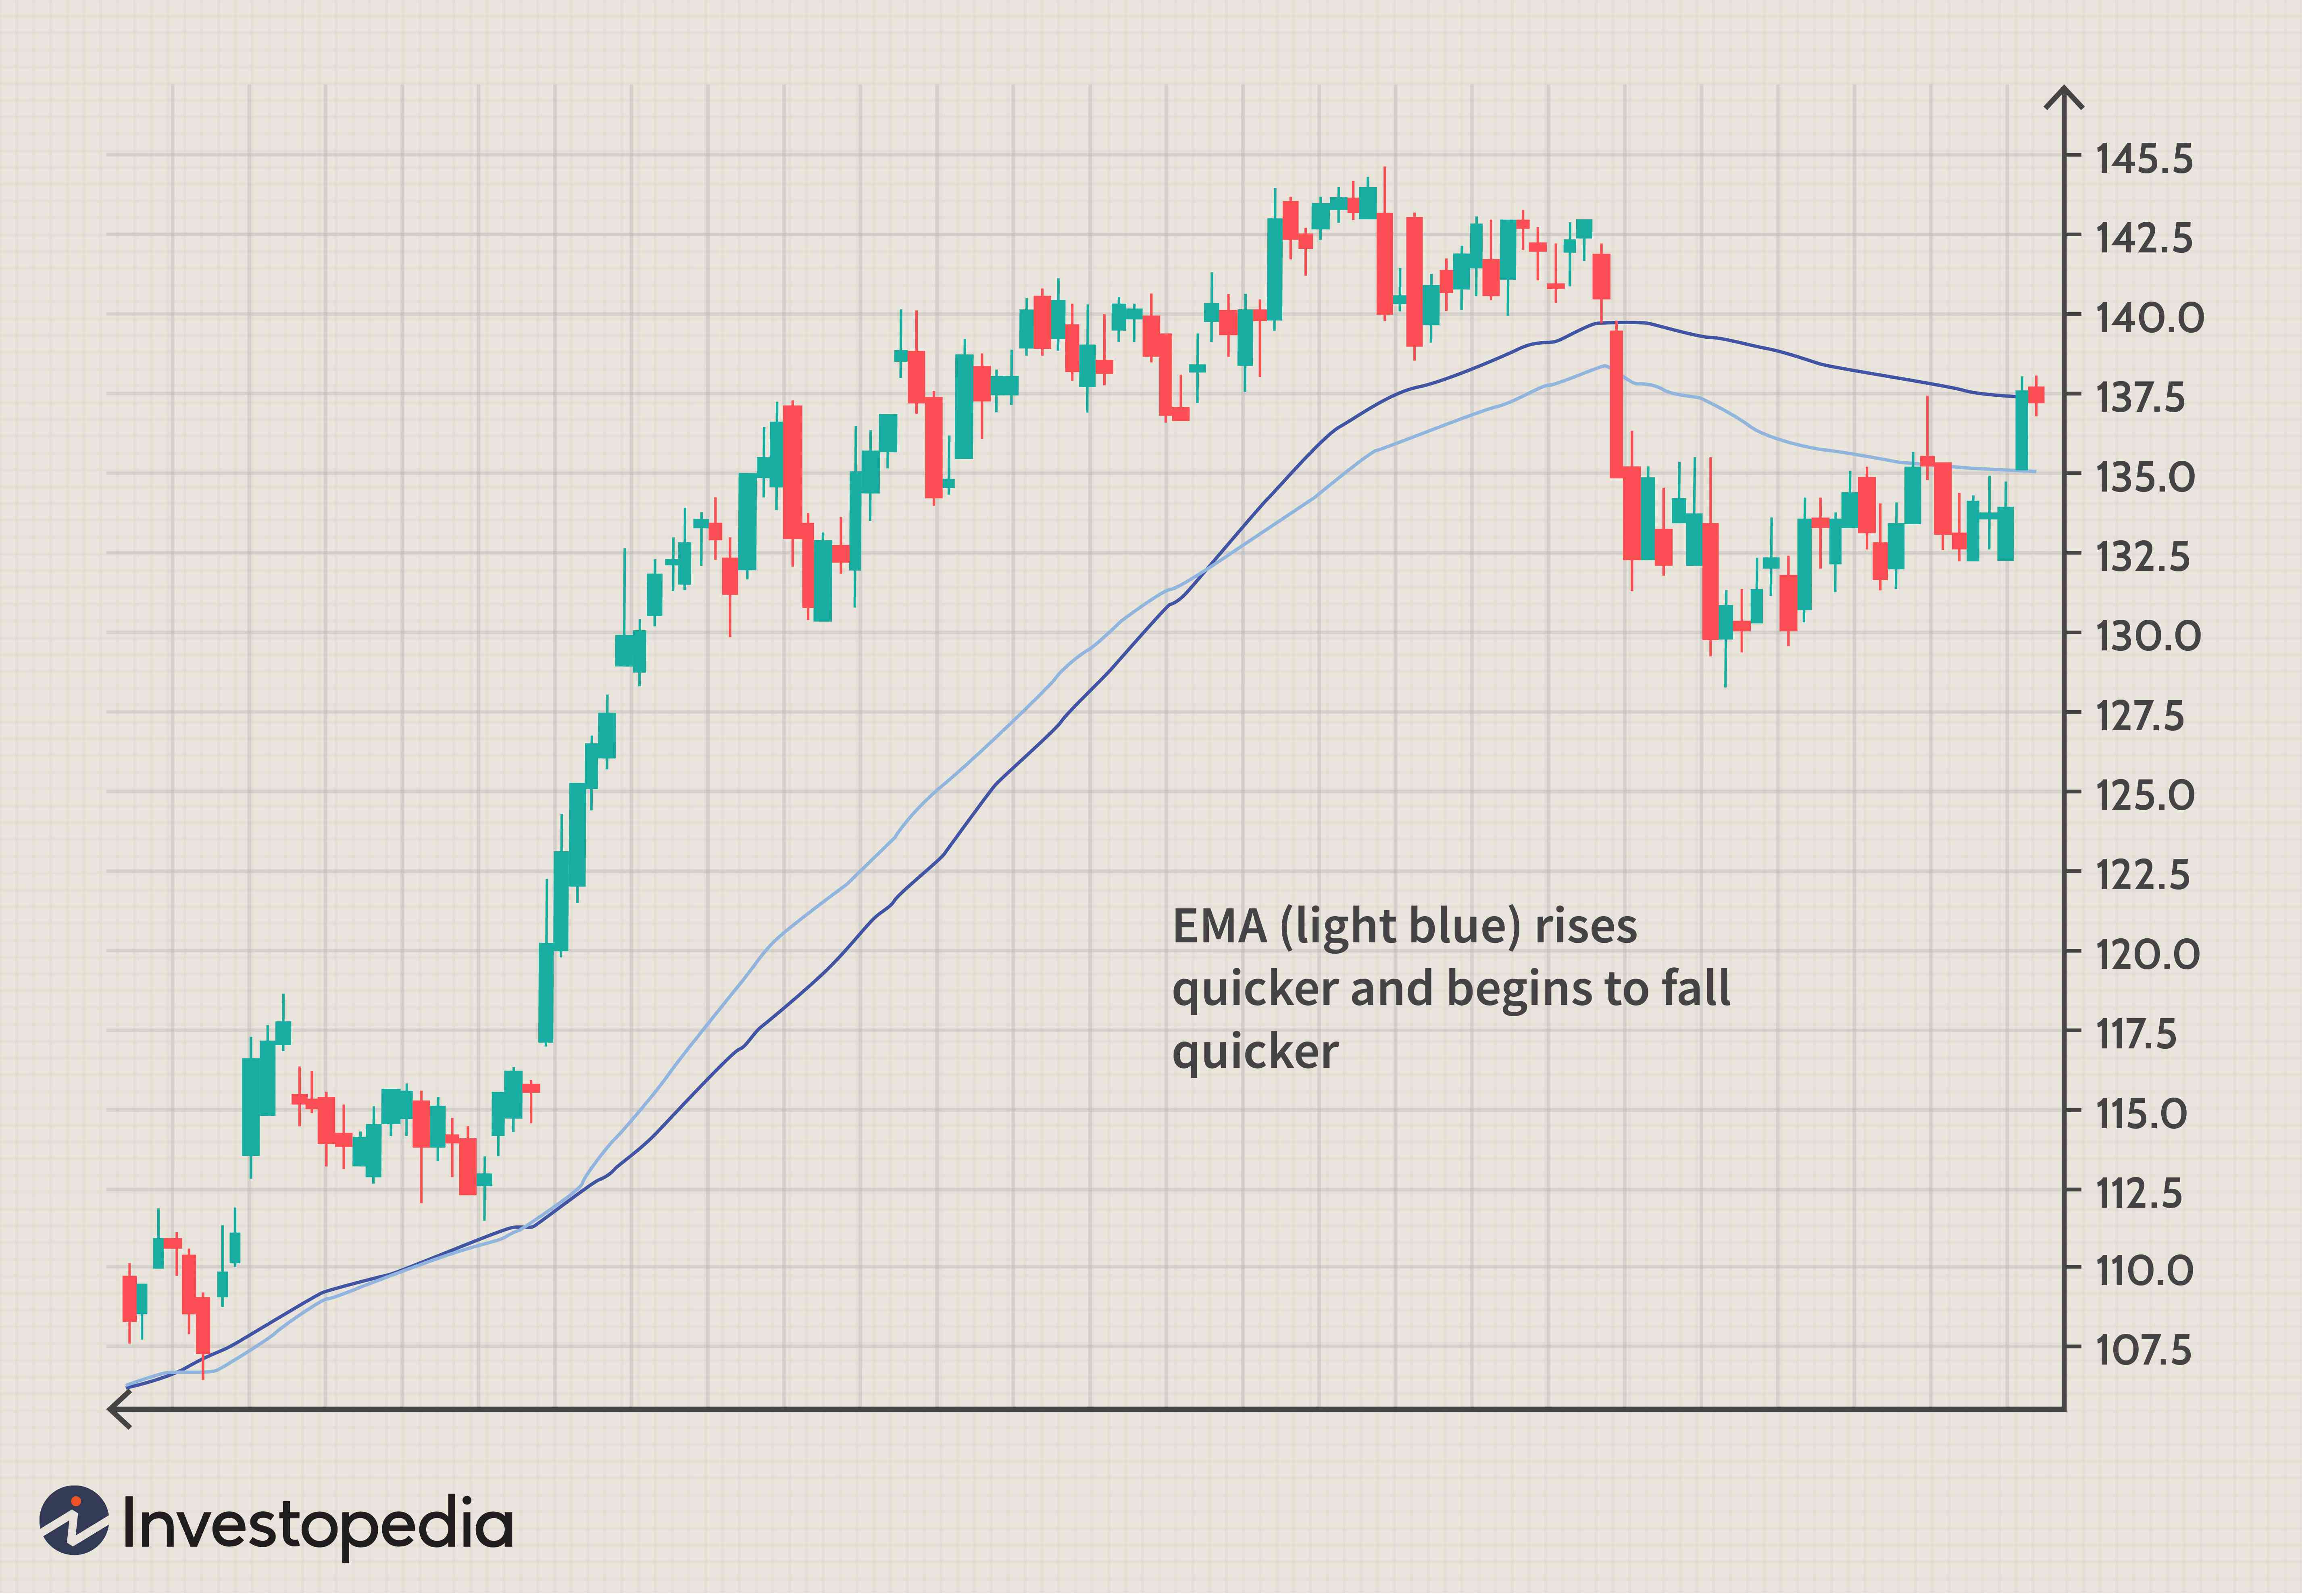 How to Use a Moving Average to Buy Stocks